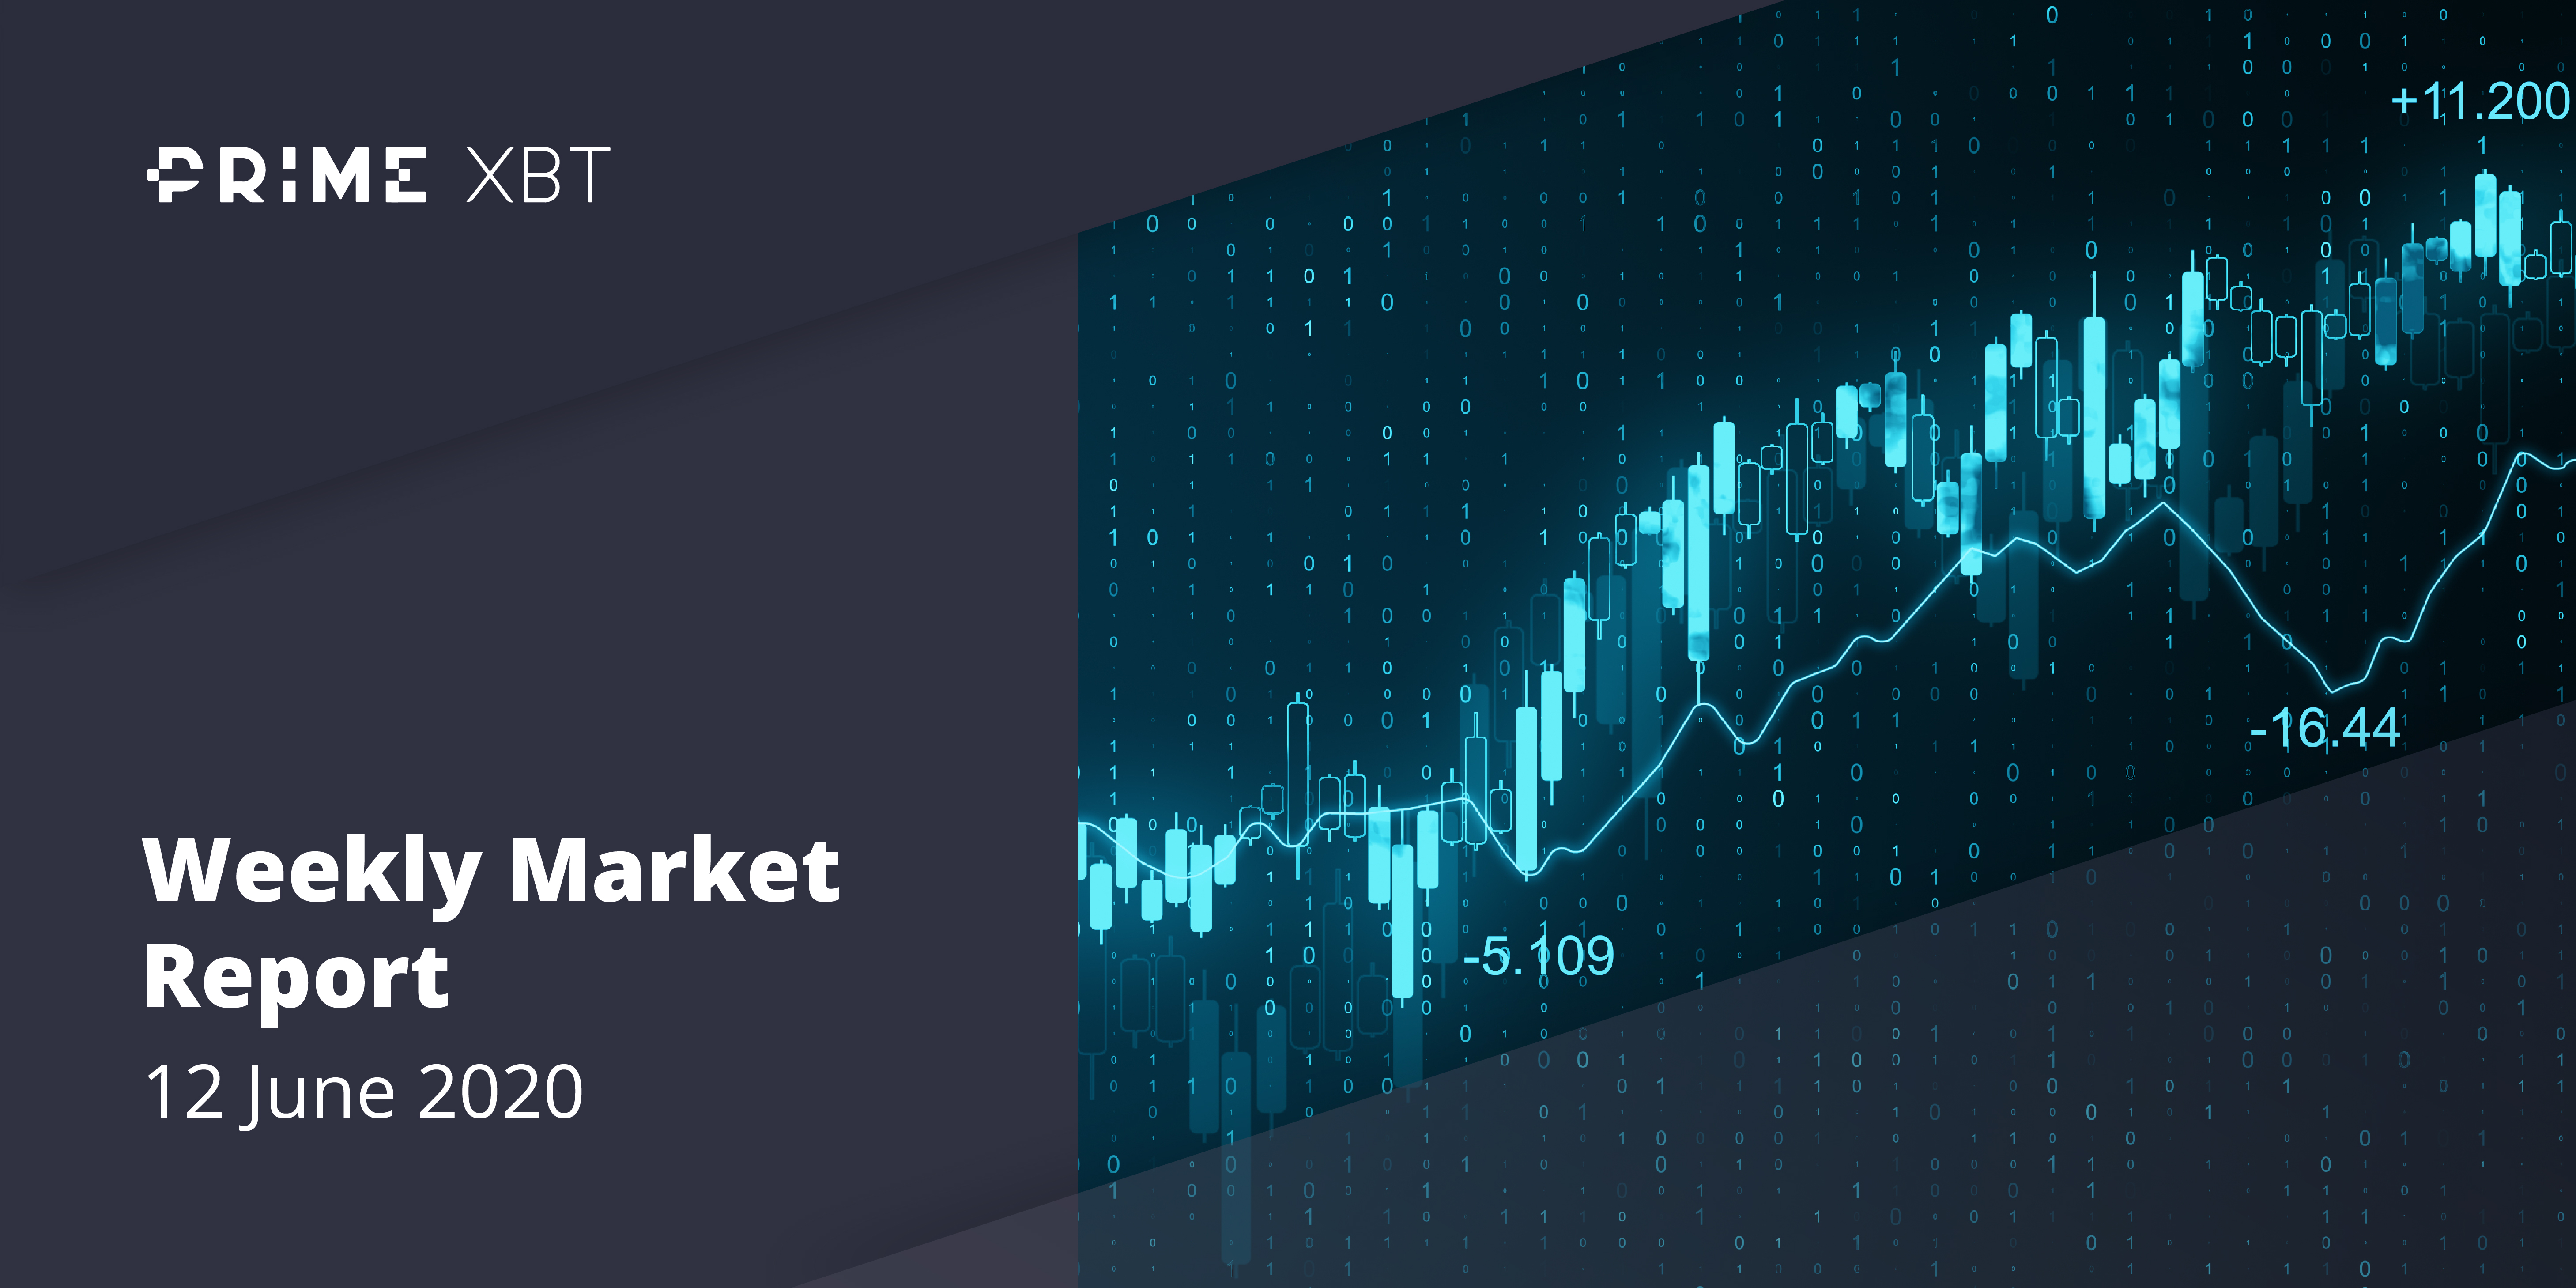 Crypto Market Report: Sideways BTC Price Forces Volatility to Year Low, Futures Market Interest Up as Global Markets Pullback - 12.06.20